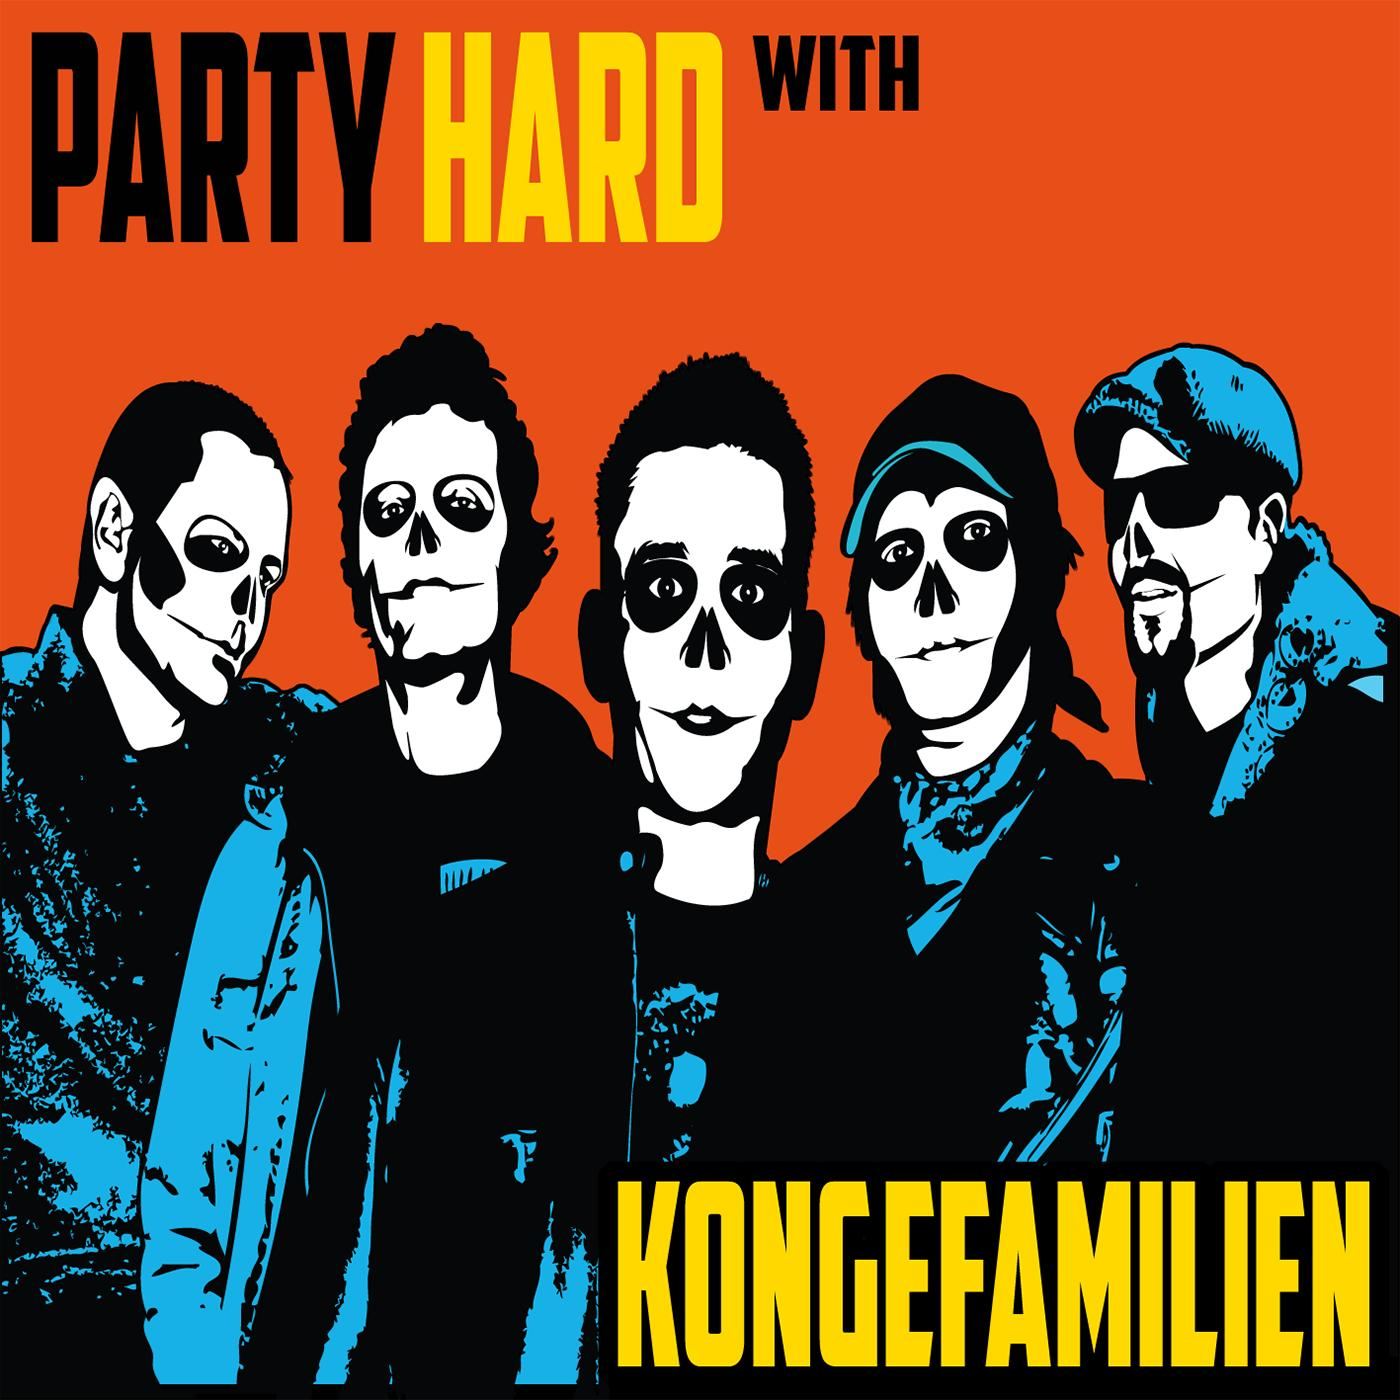 Party Hard with Kongefamilien